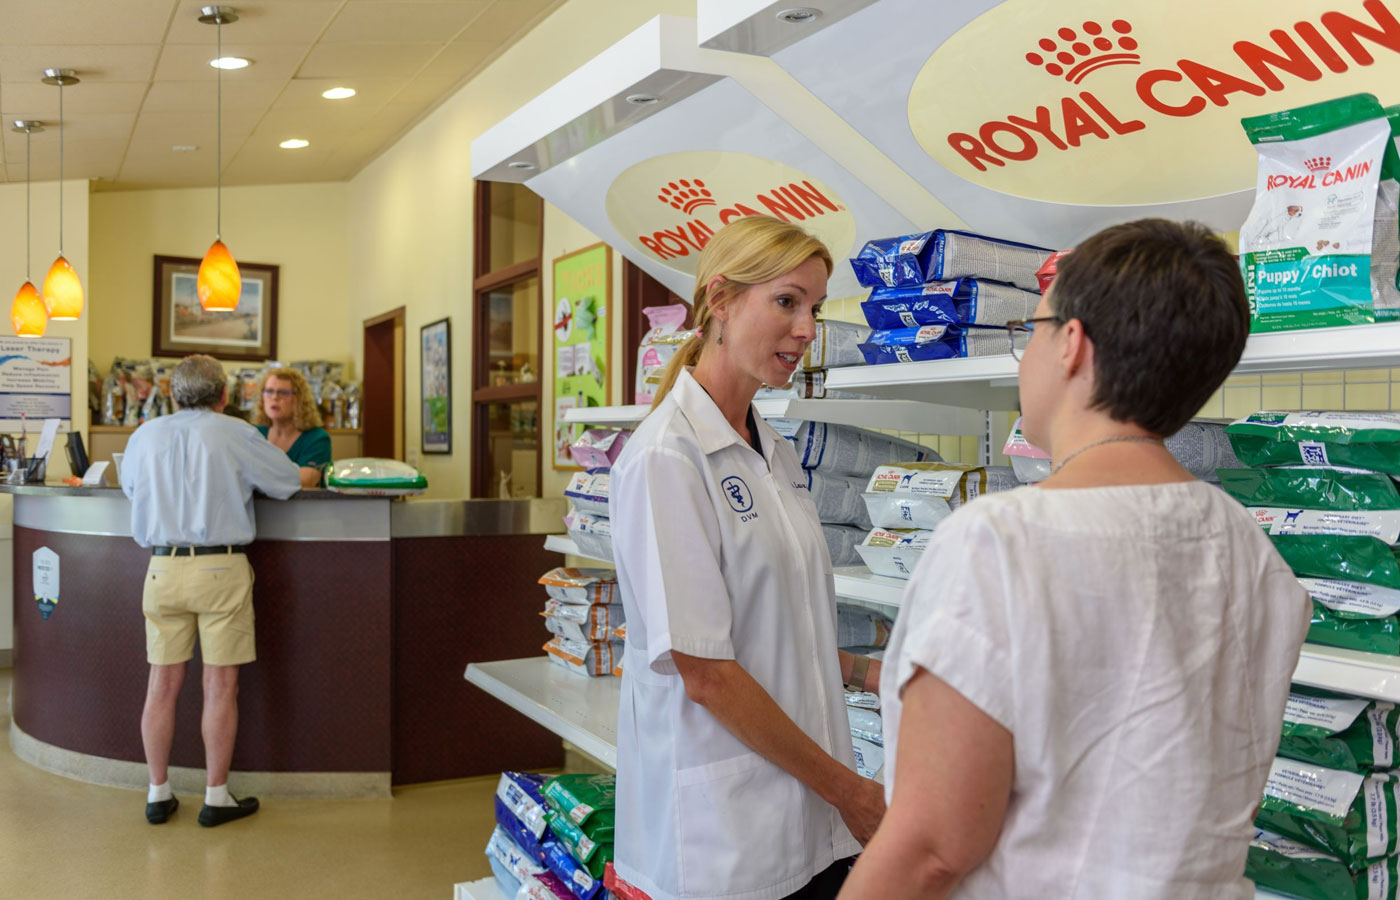 pet nutritional counseling at vet clinic